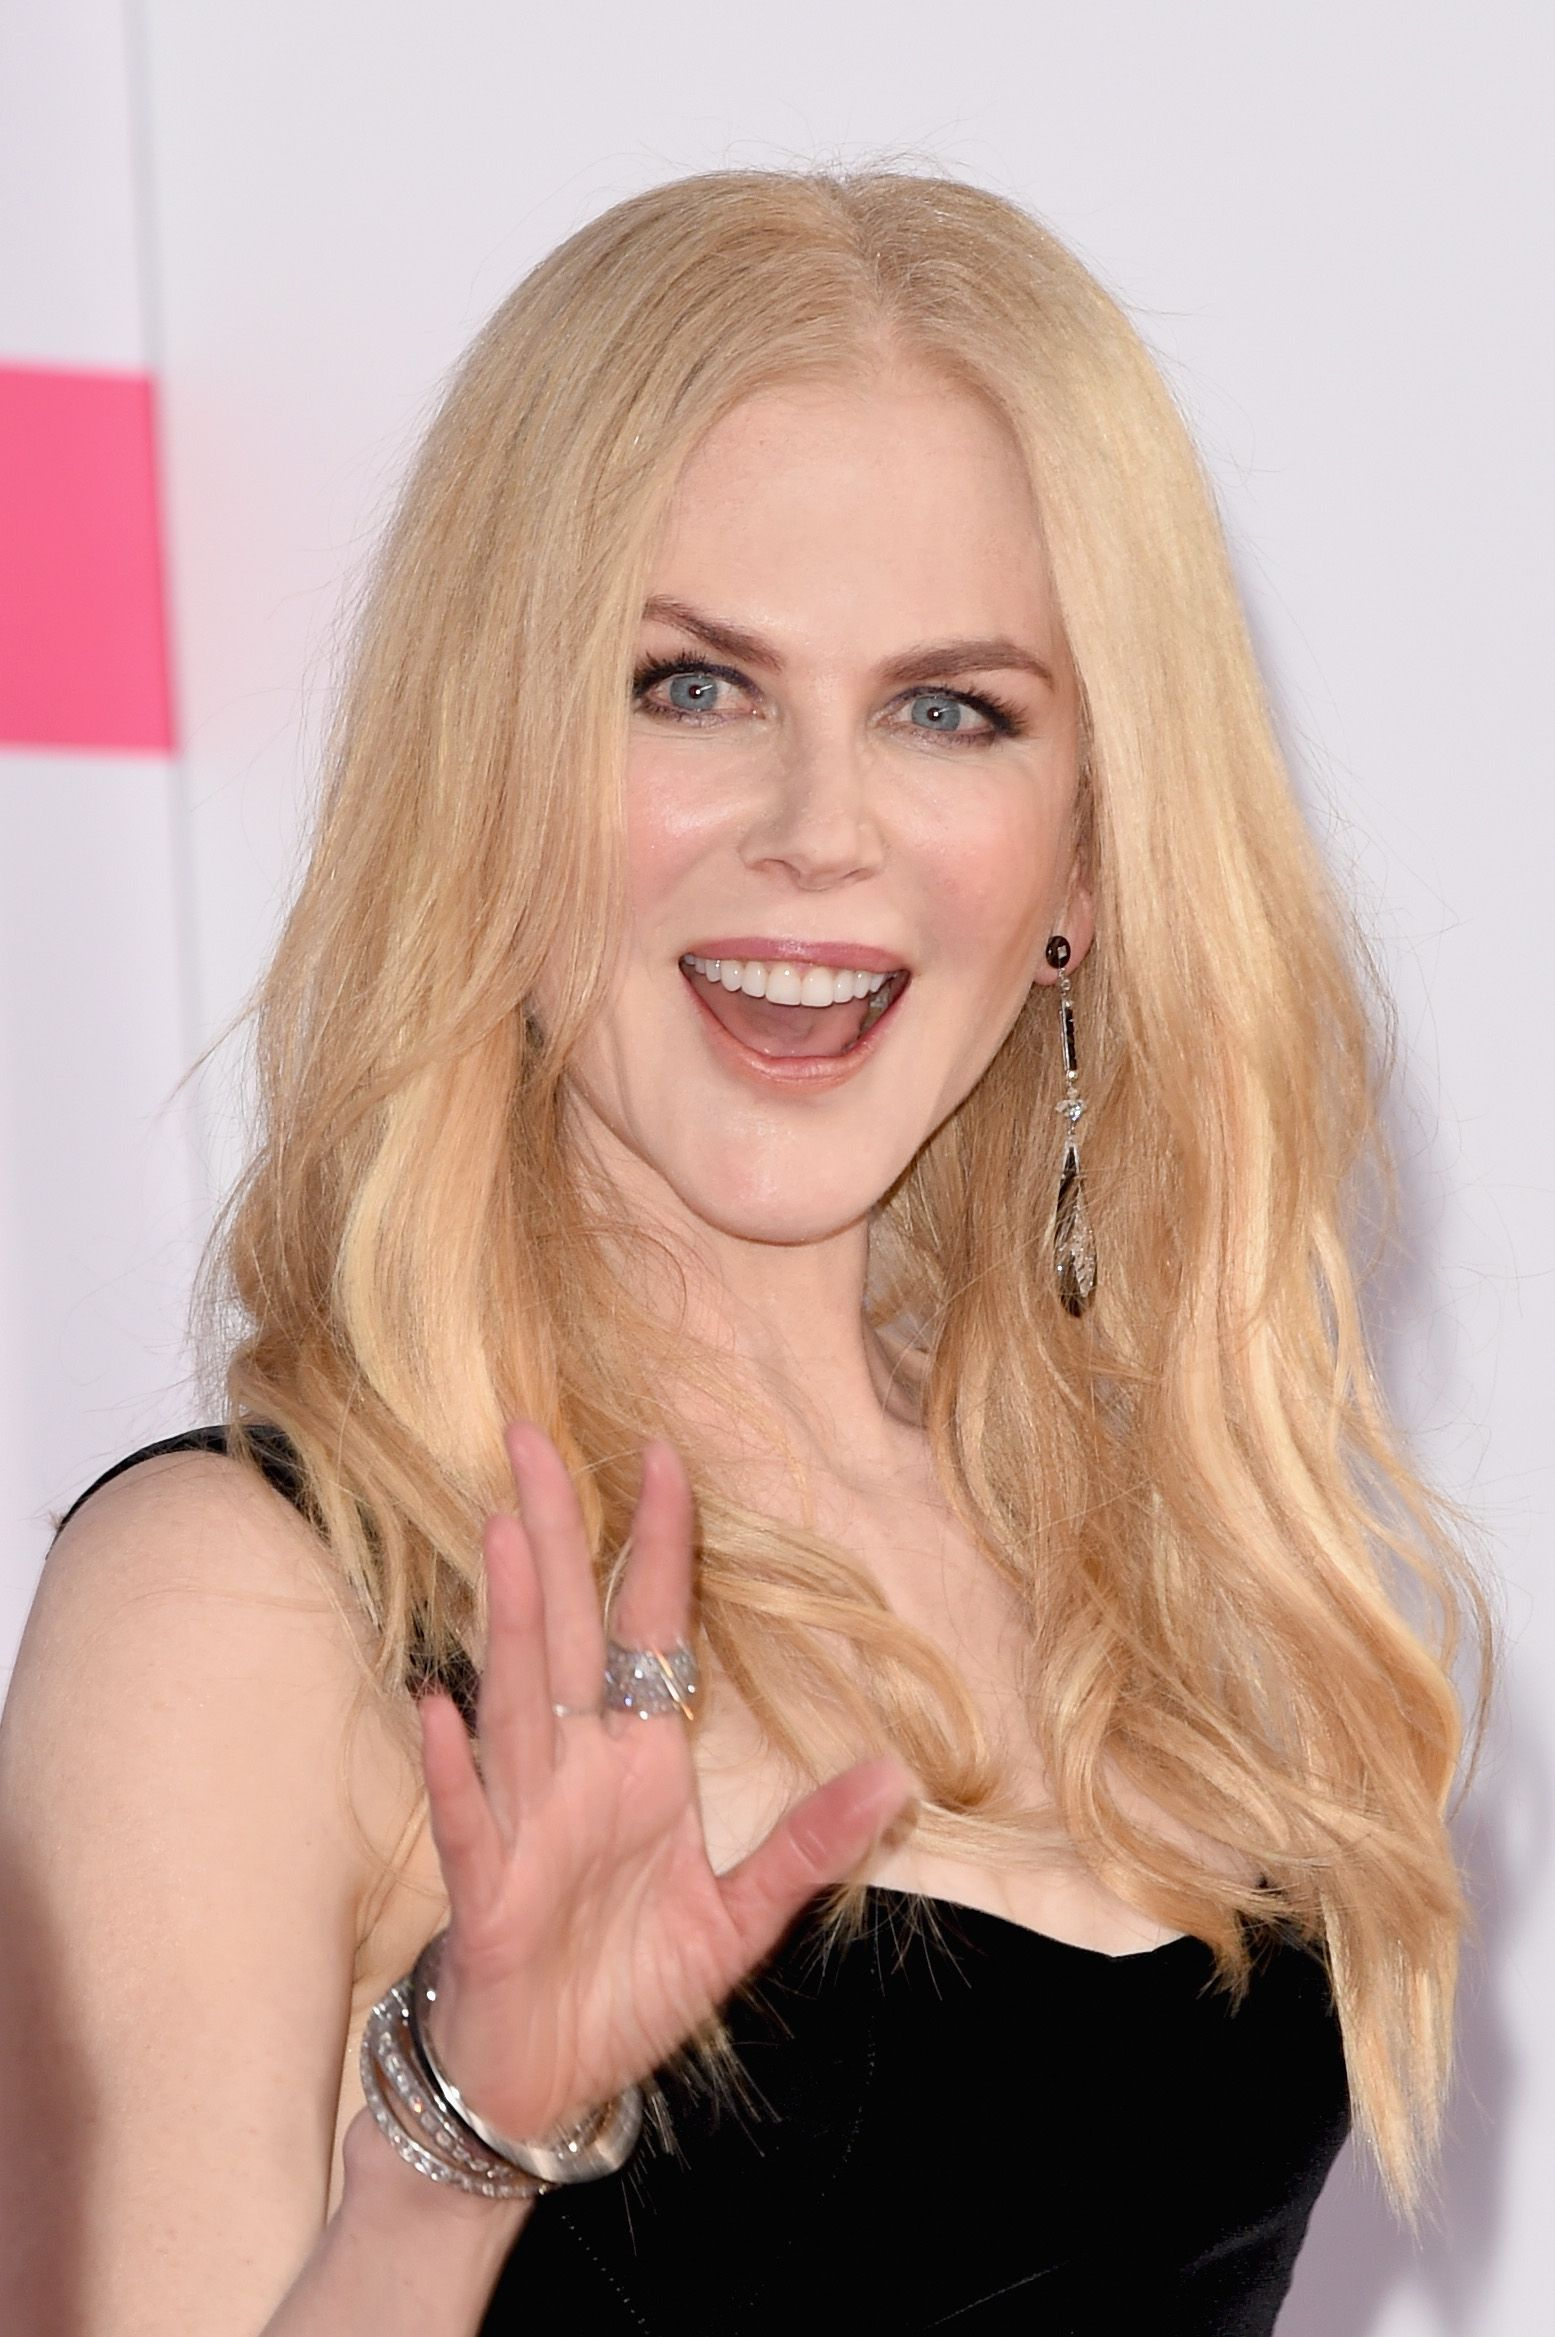 Nicole Kidman at 2017 American Music Awards at Microsoft Theater on November 19, 2017 in Los Angeles, California. | Photo: Getty Images